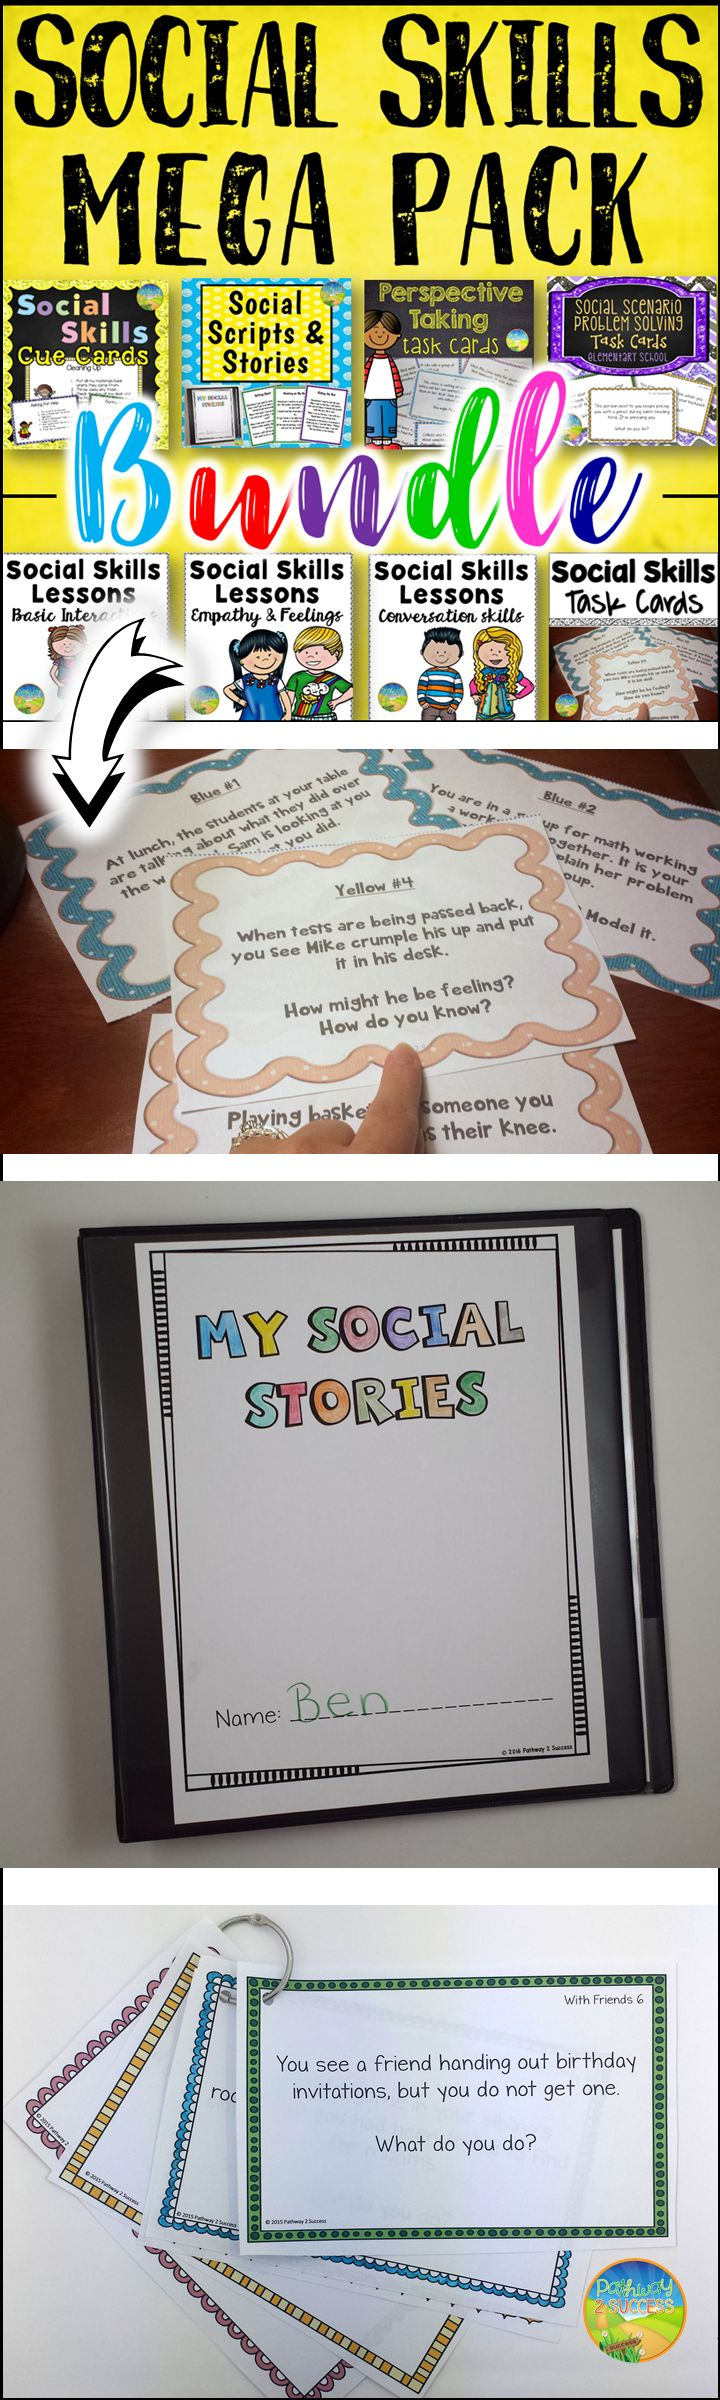 Social skills resources including lesson plans, activities, task cards, scripts and more.